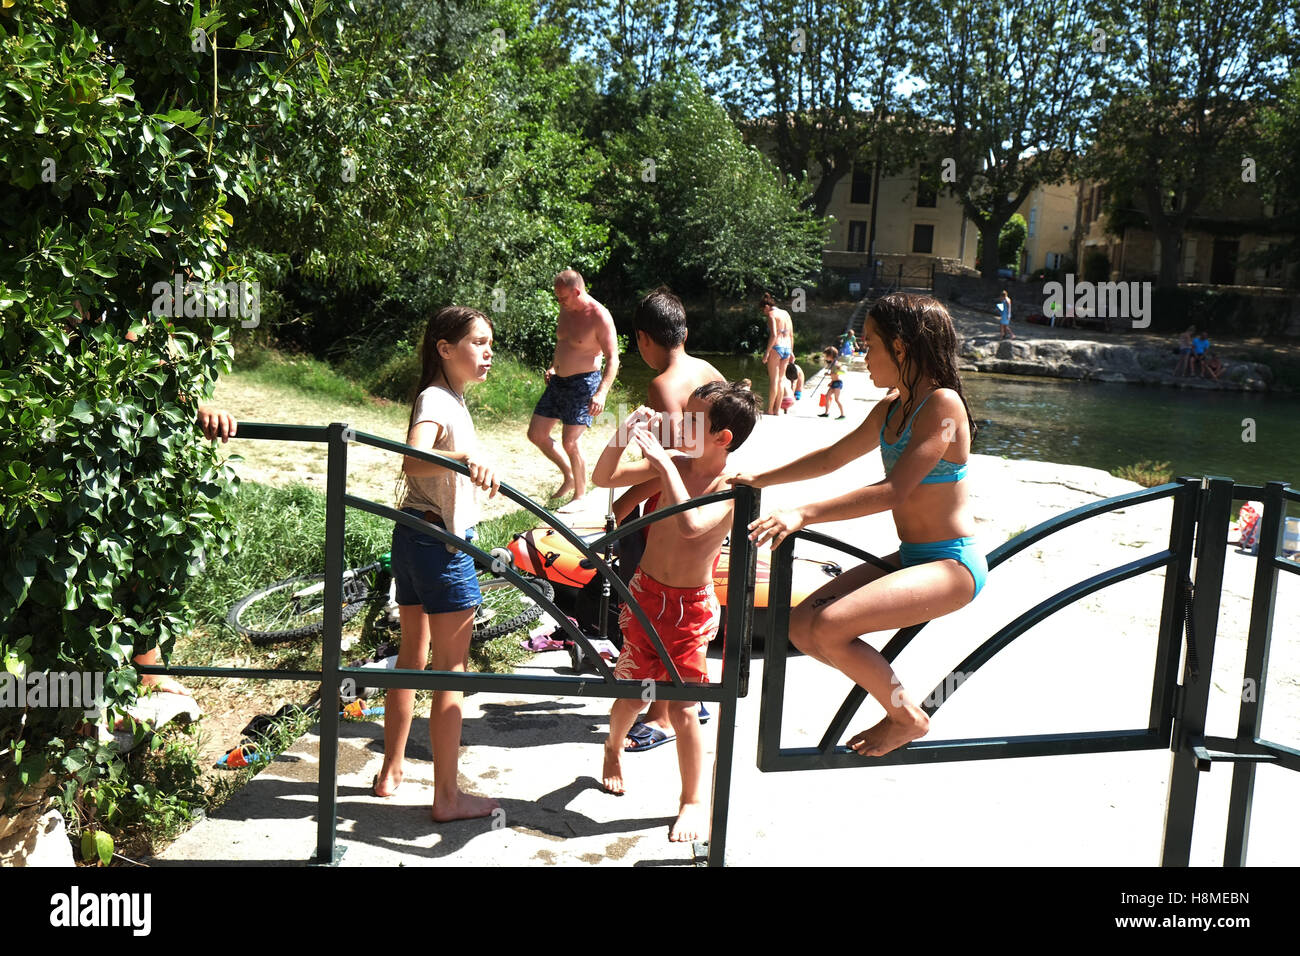 young friends play ion the summer sunshine meeting in the middle of the village by the water - Stock Image